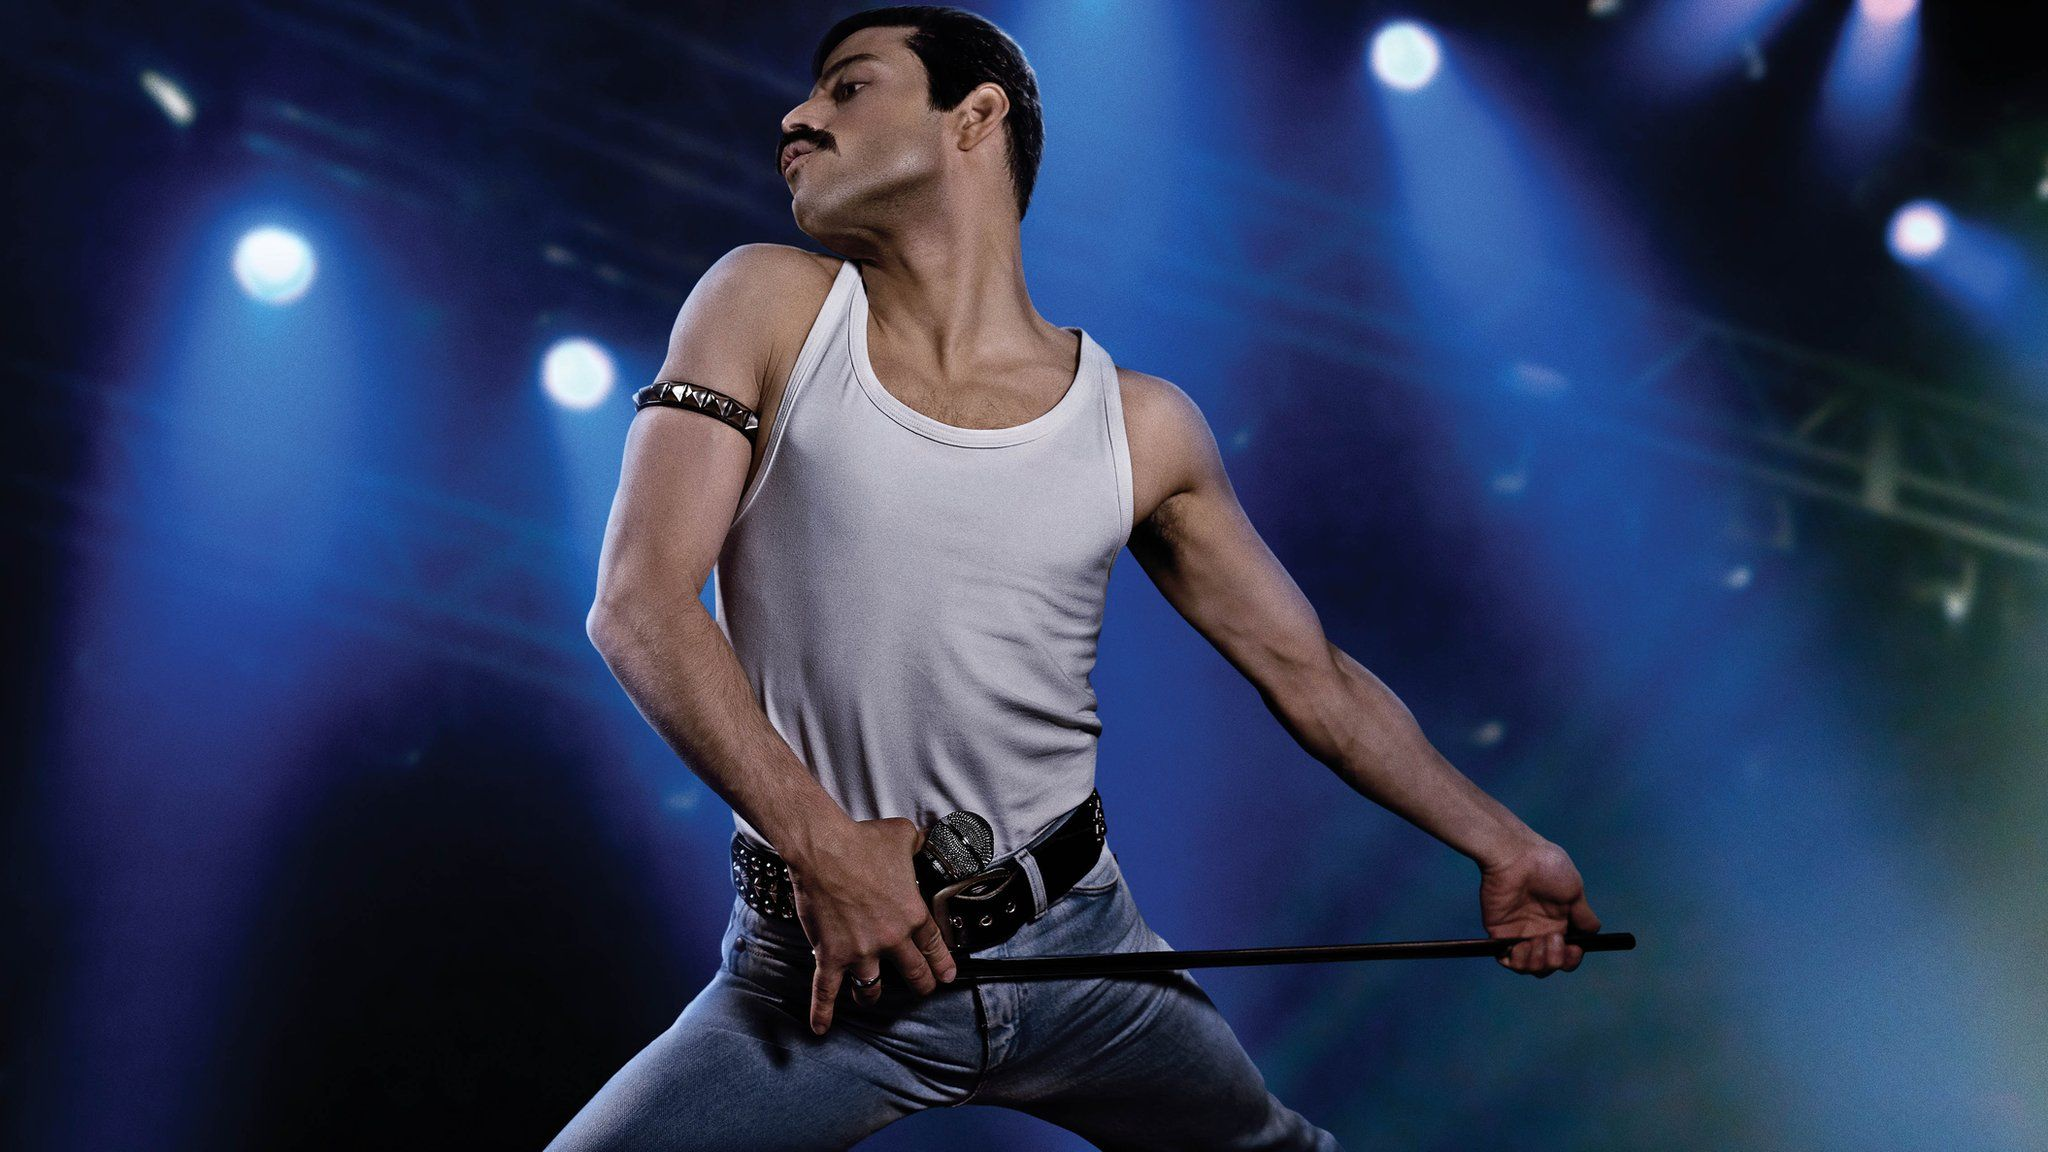 Freddie Mercury: 'Lost' song Time Waits For No One premieres on